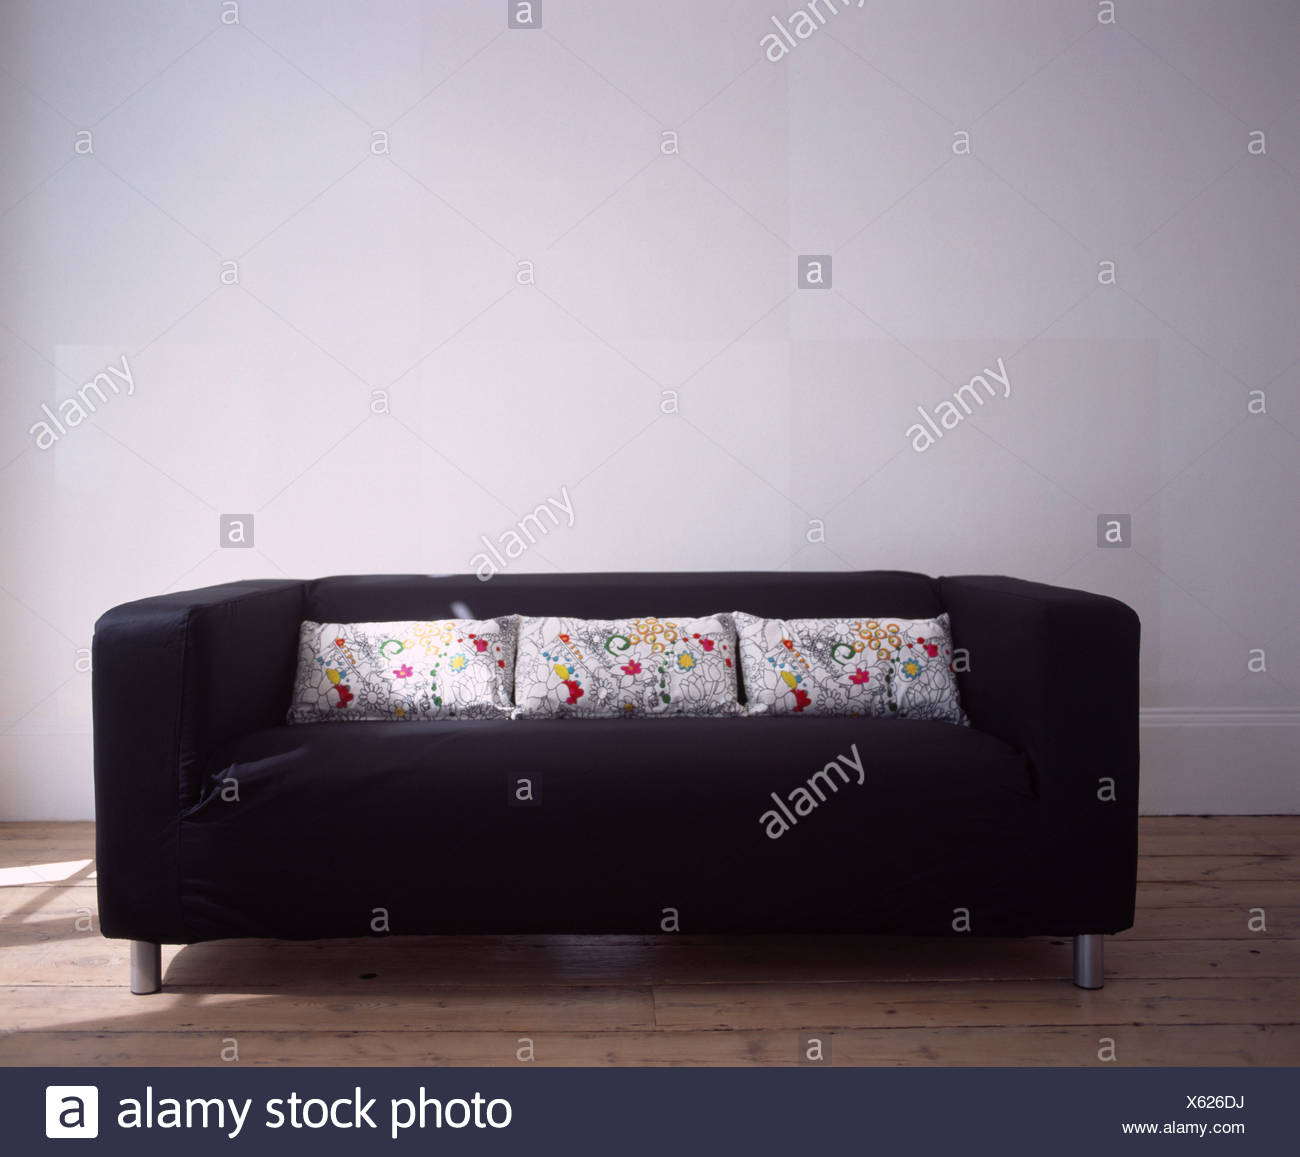 Modern black sofa with floral patterned cushions - Stock Image